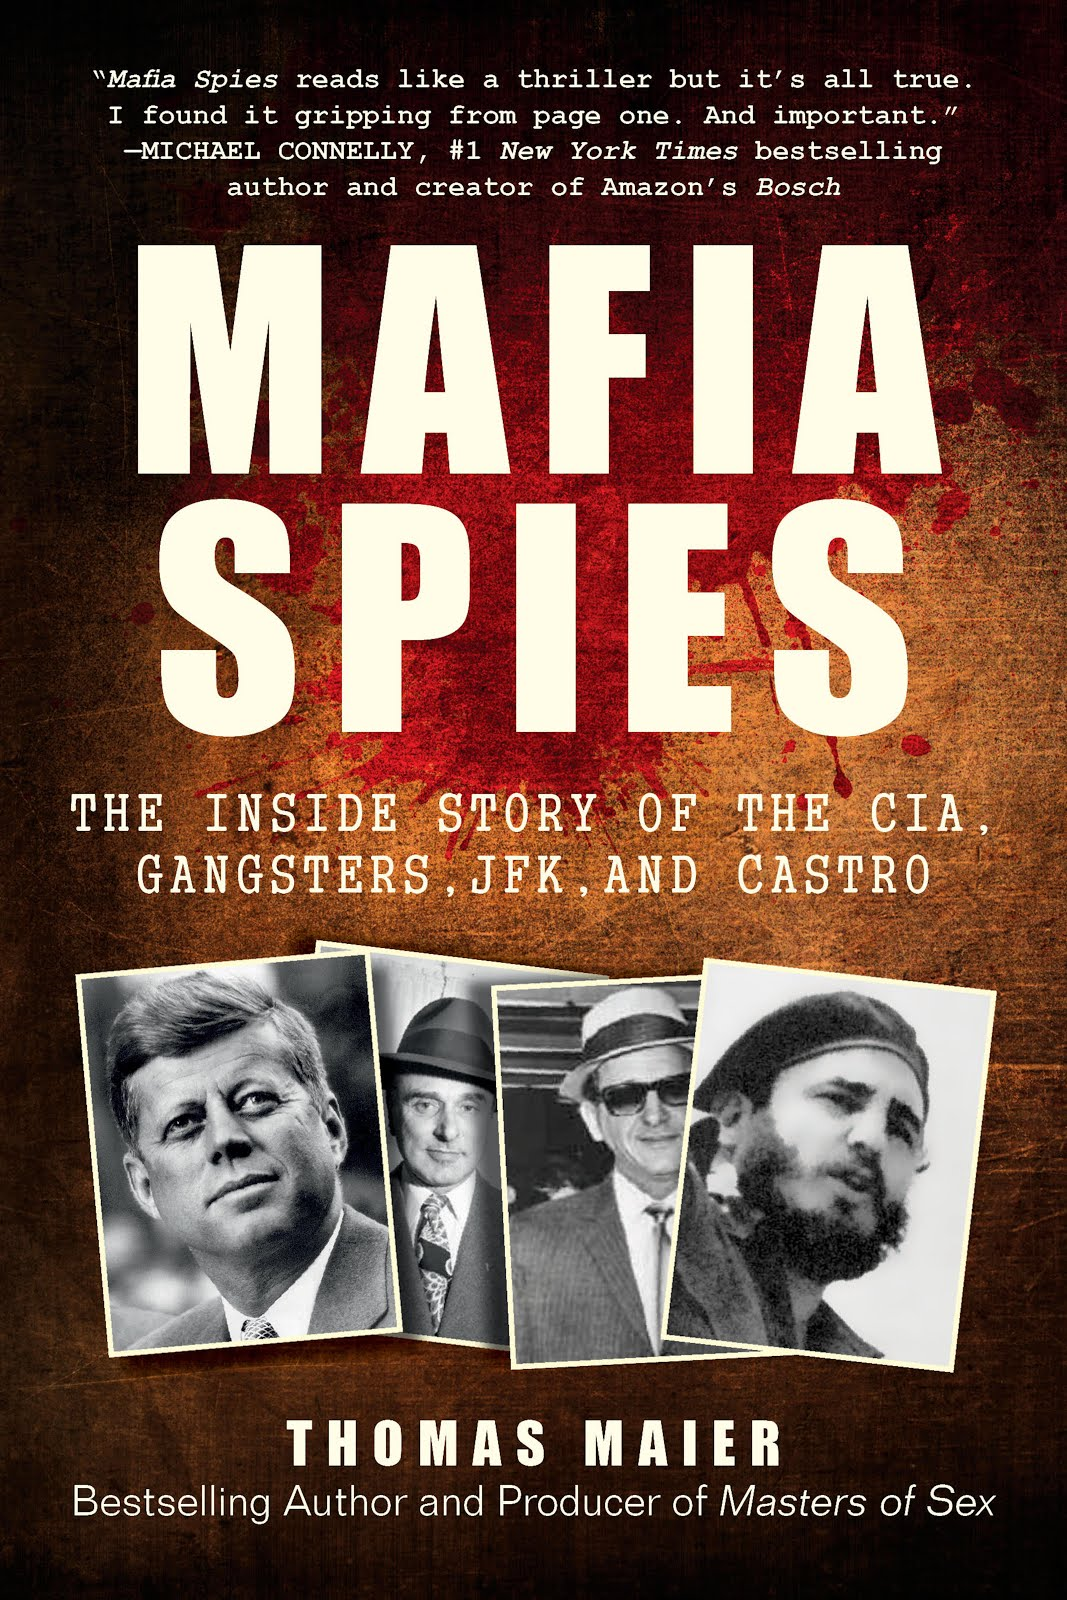 MAFIA SPIES by Thomas Maier